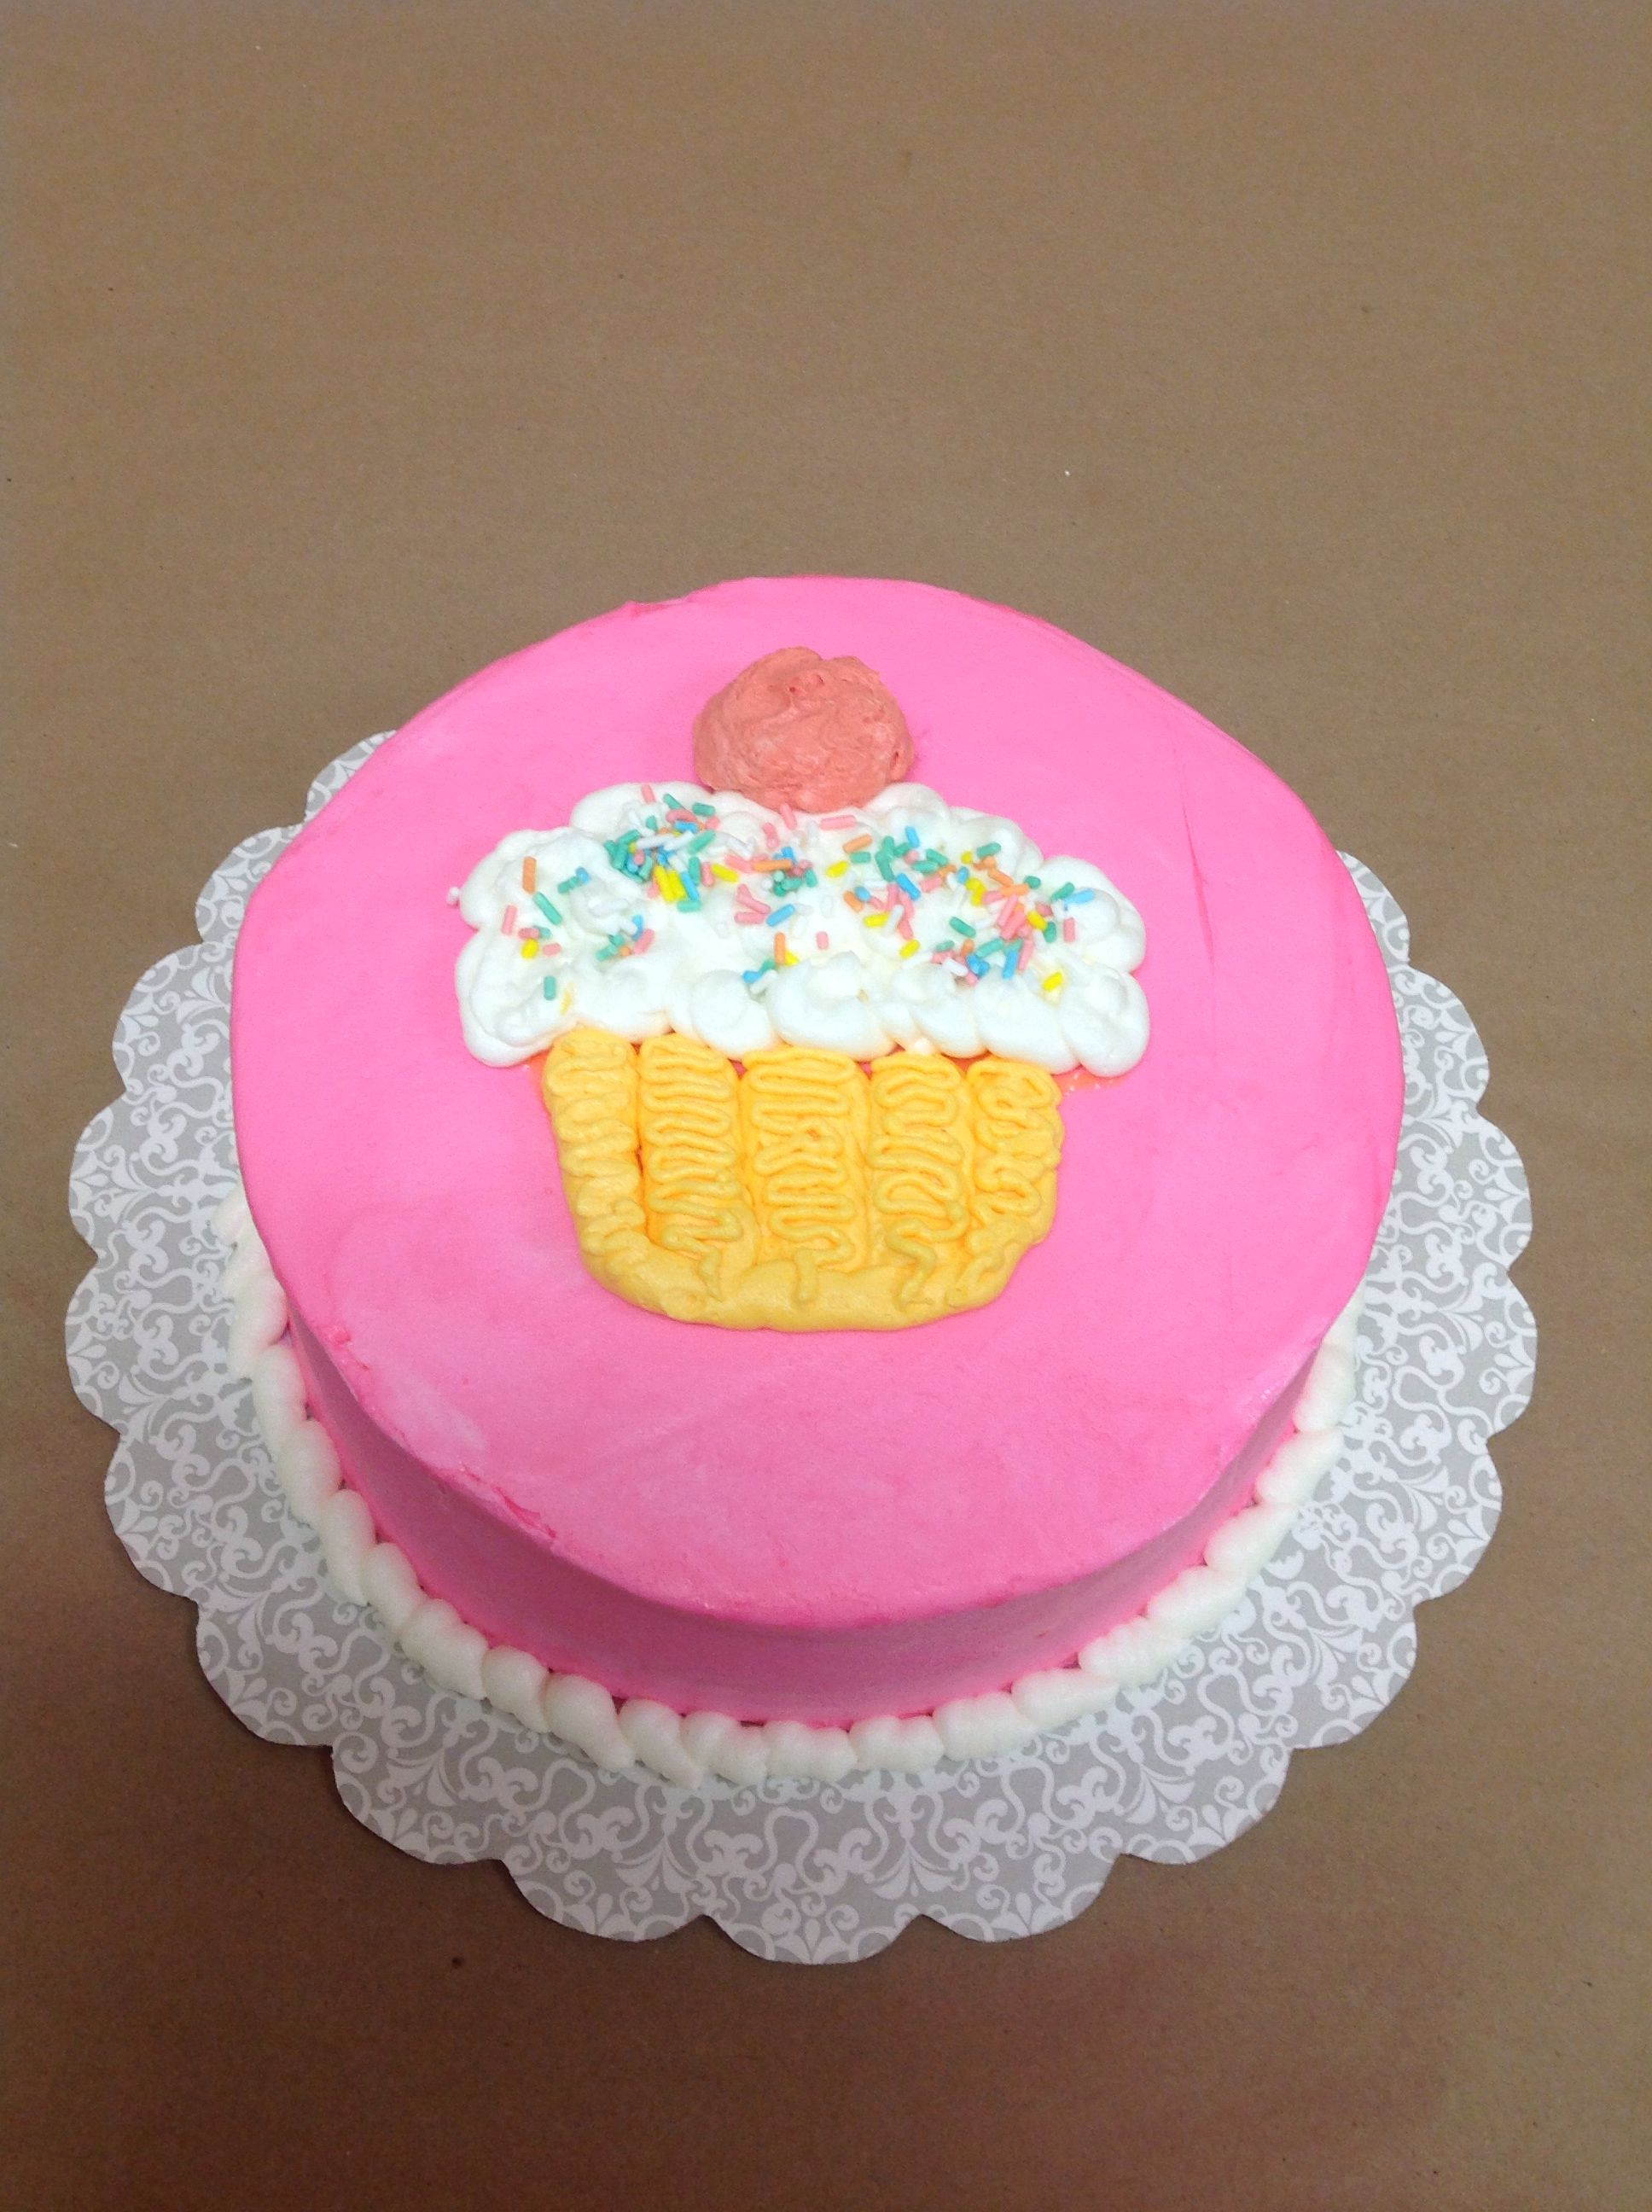 Best Ac Moore Cake Decorating Class Decoratingspecial Com This Month